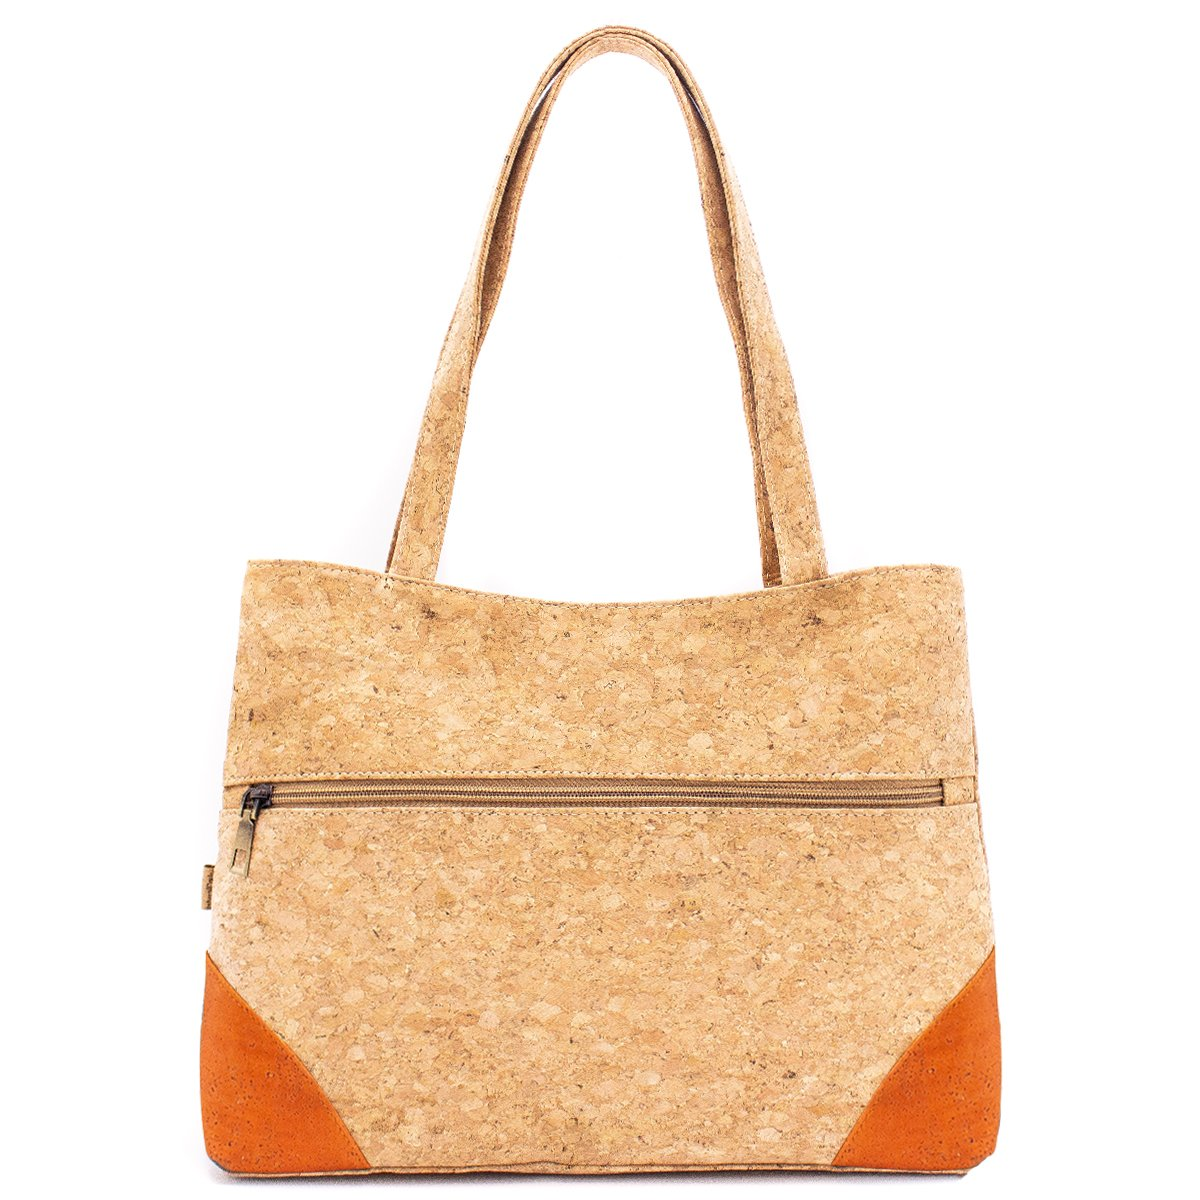 Natural Cork Handbag with Front Zipper Pocket